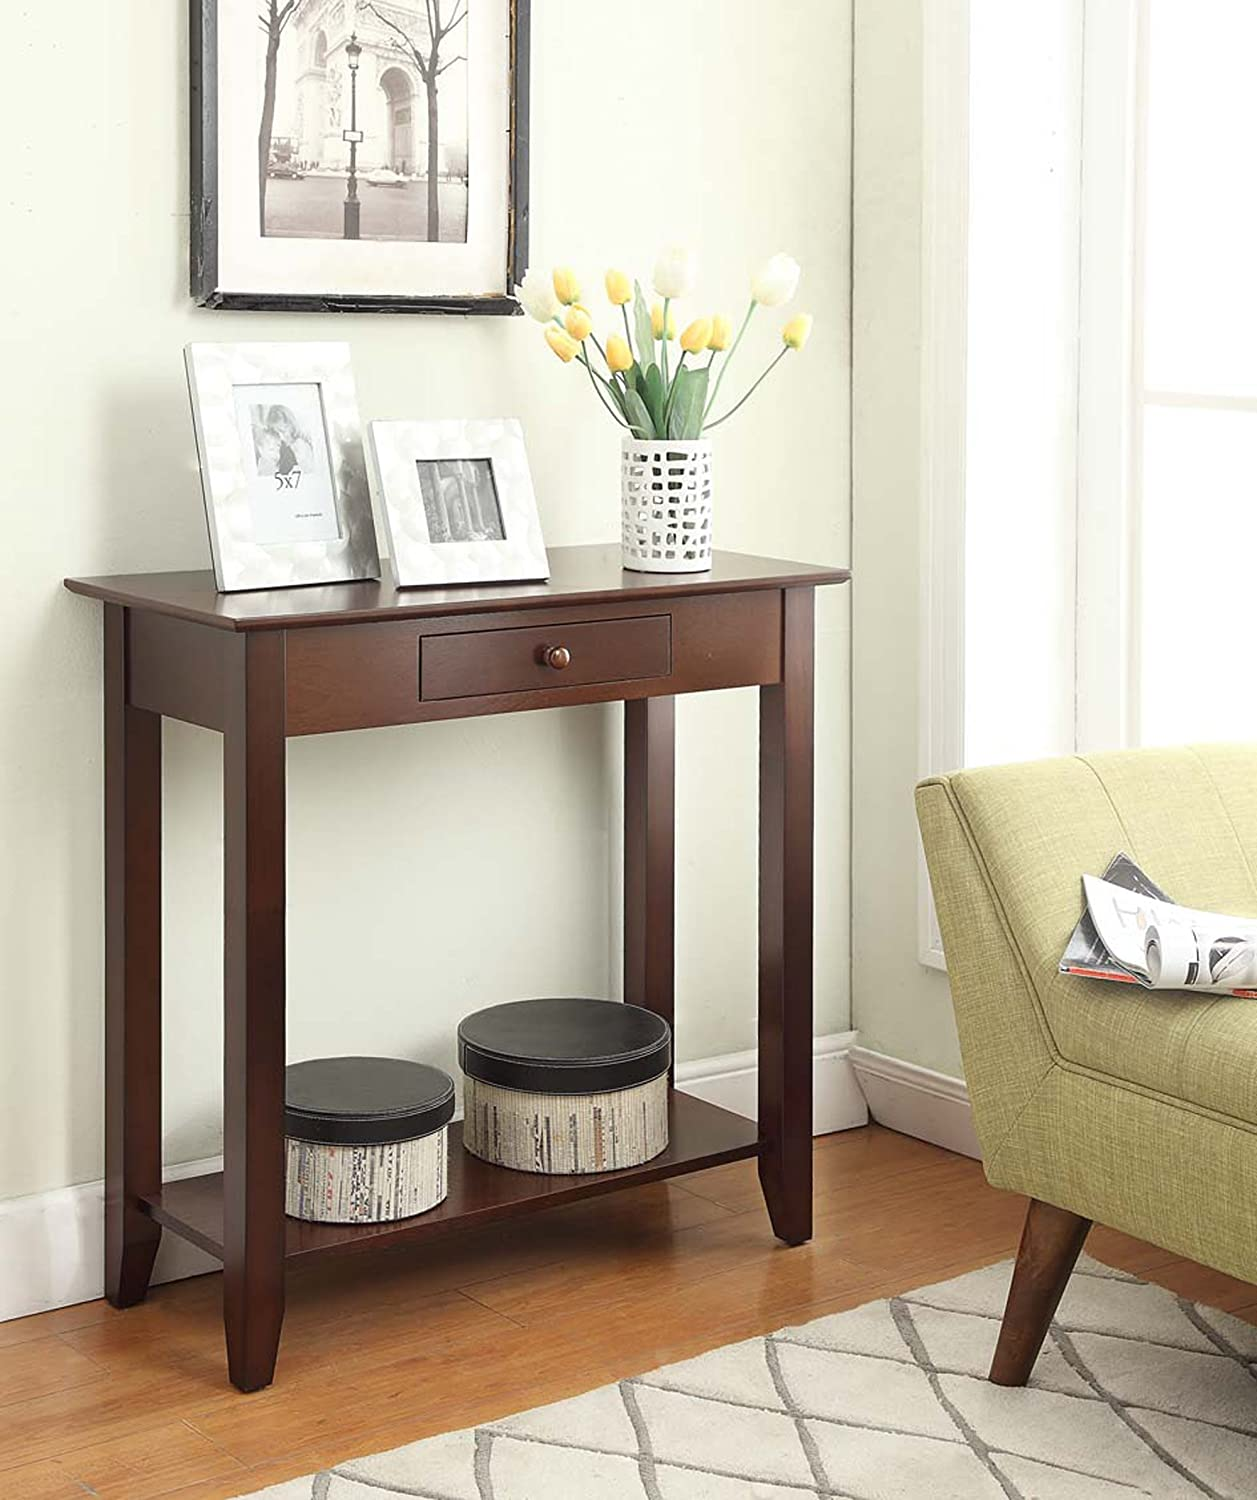 black hallway table. Amazon.com: Convenience Concepts American Heritage Hall Table With Drawer And Shelf, Espresso: Kitchen \u0026 Dining Black Hallway